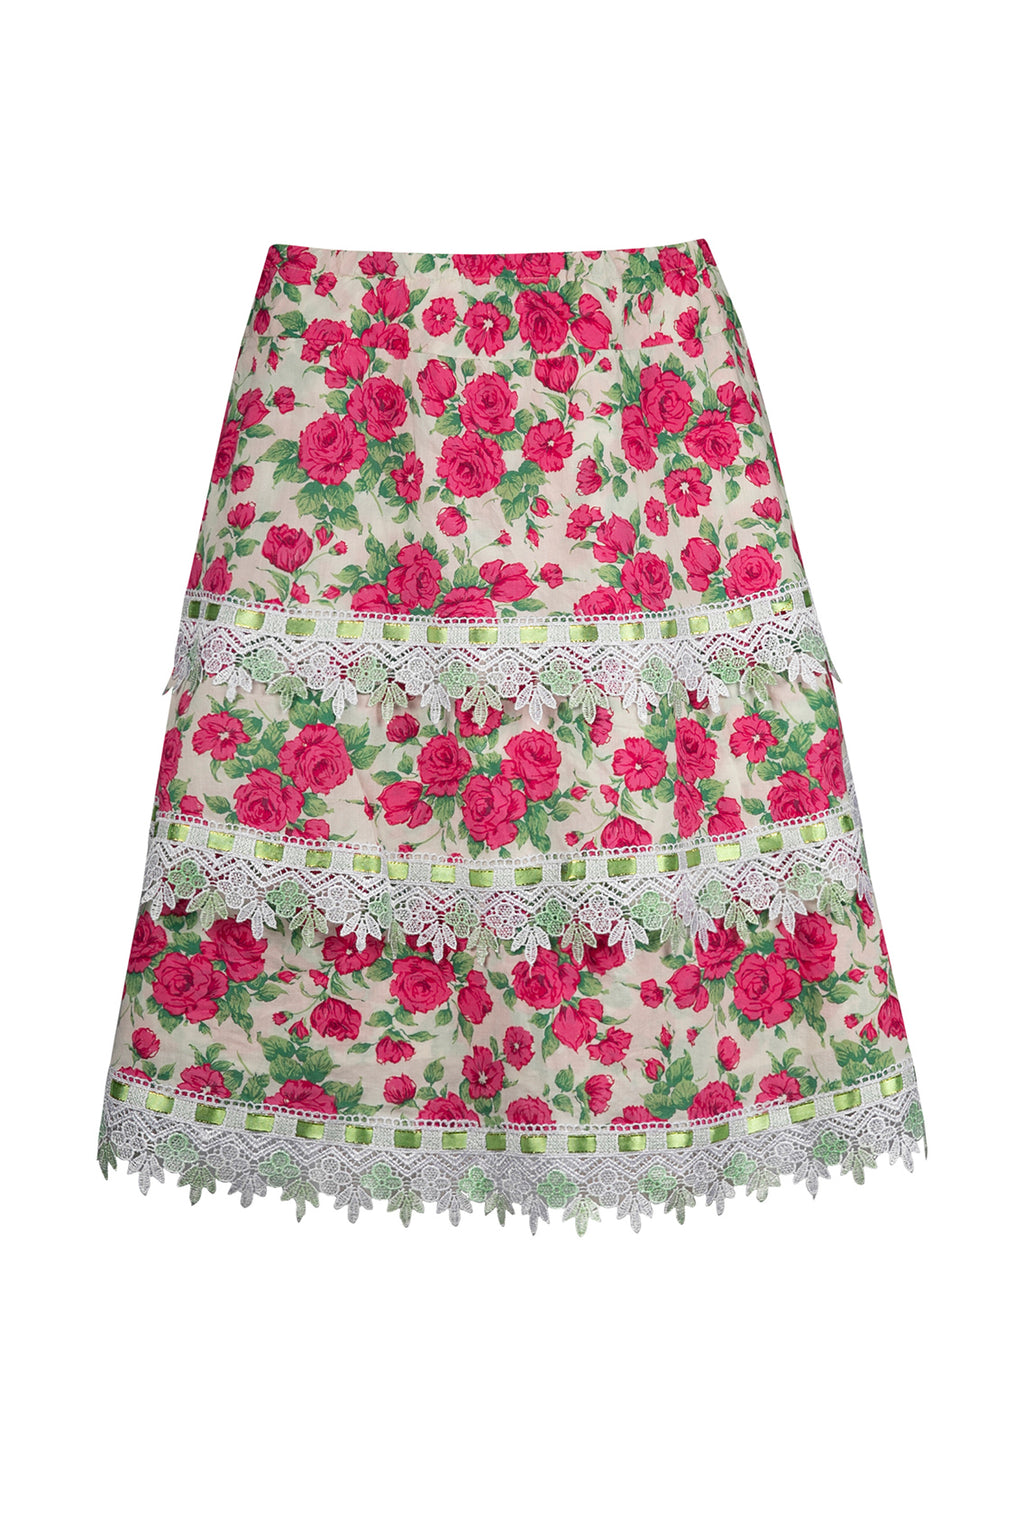 Vintage Rose Floral Tiered Skirt